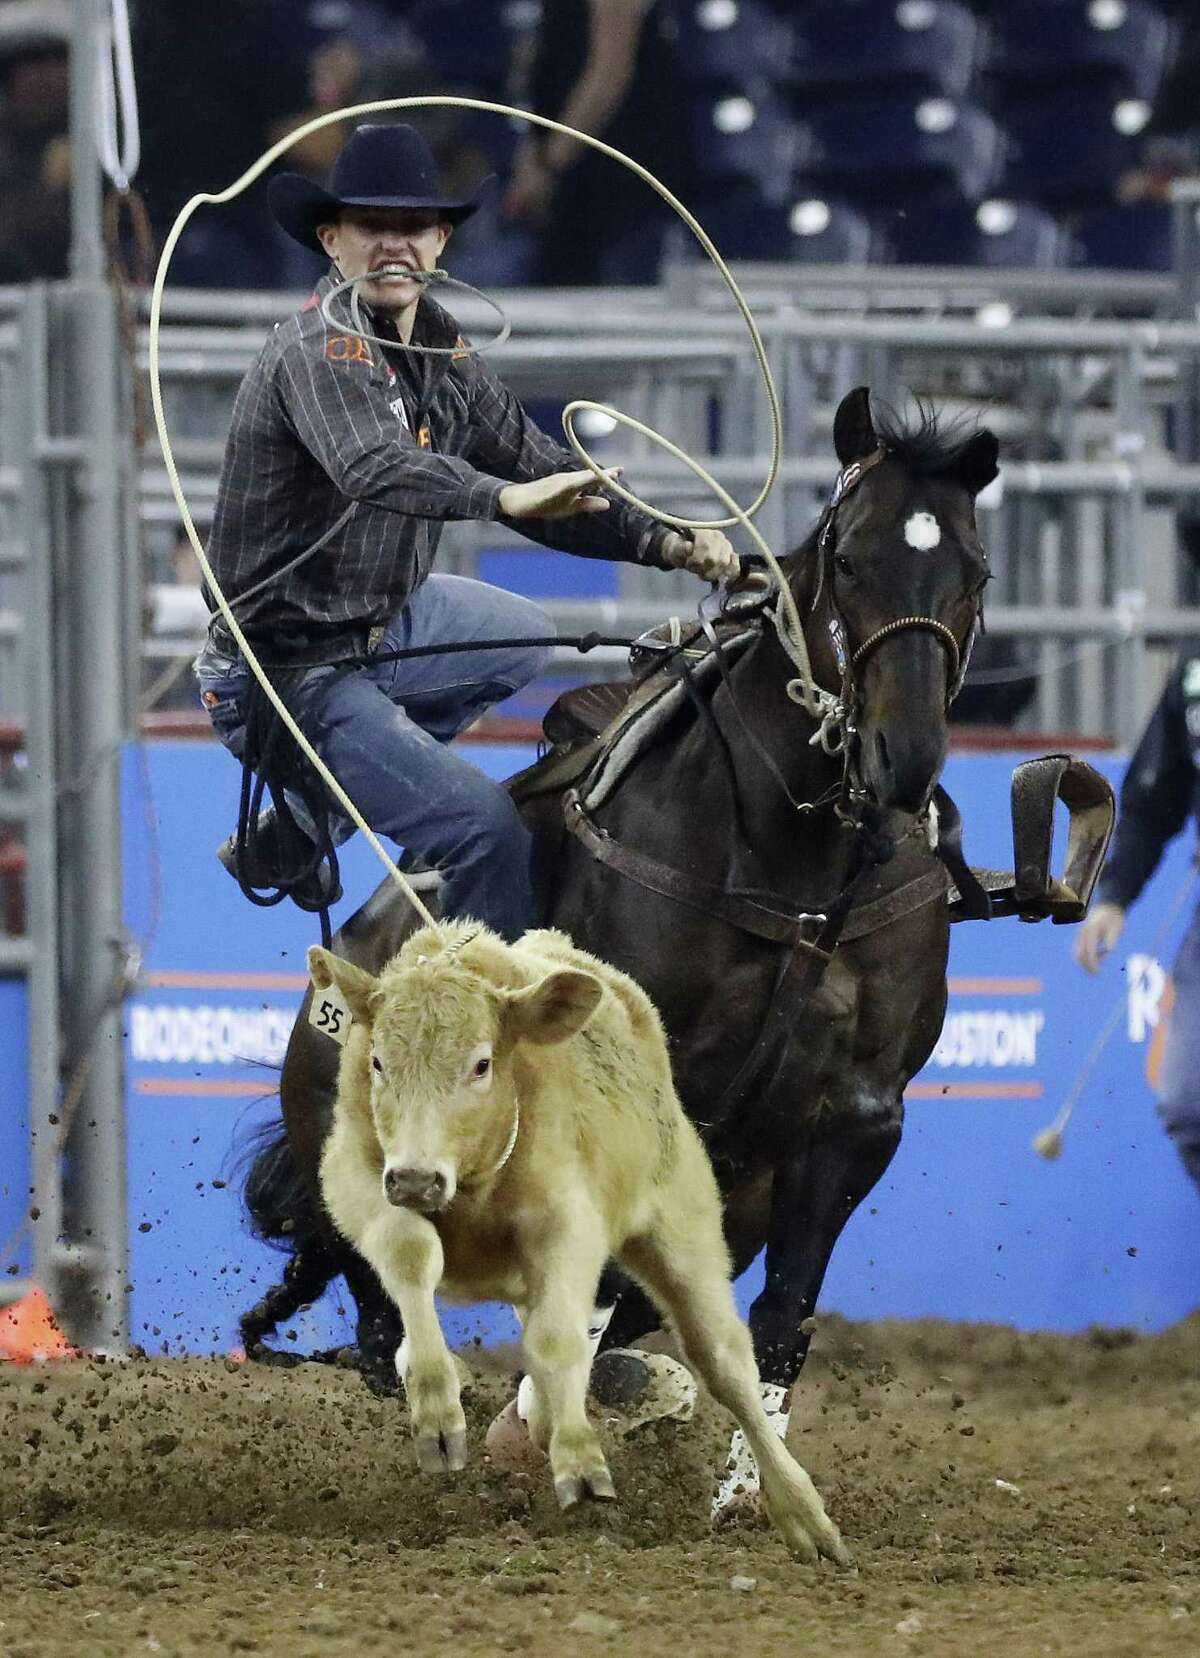 Tuf Cooper competes in the tie-down roping in round 1 of the Super Series I on Monday during the Houston Livestock Show and Rodeo at NRG Stadium.